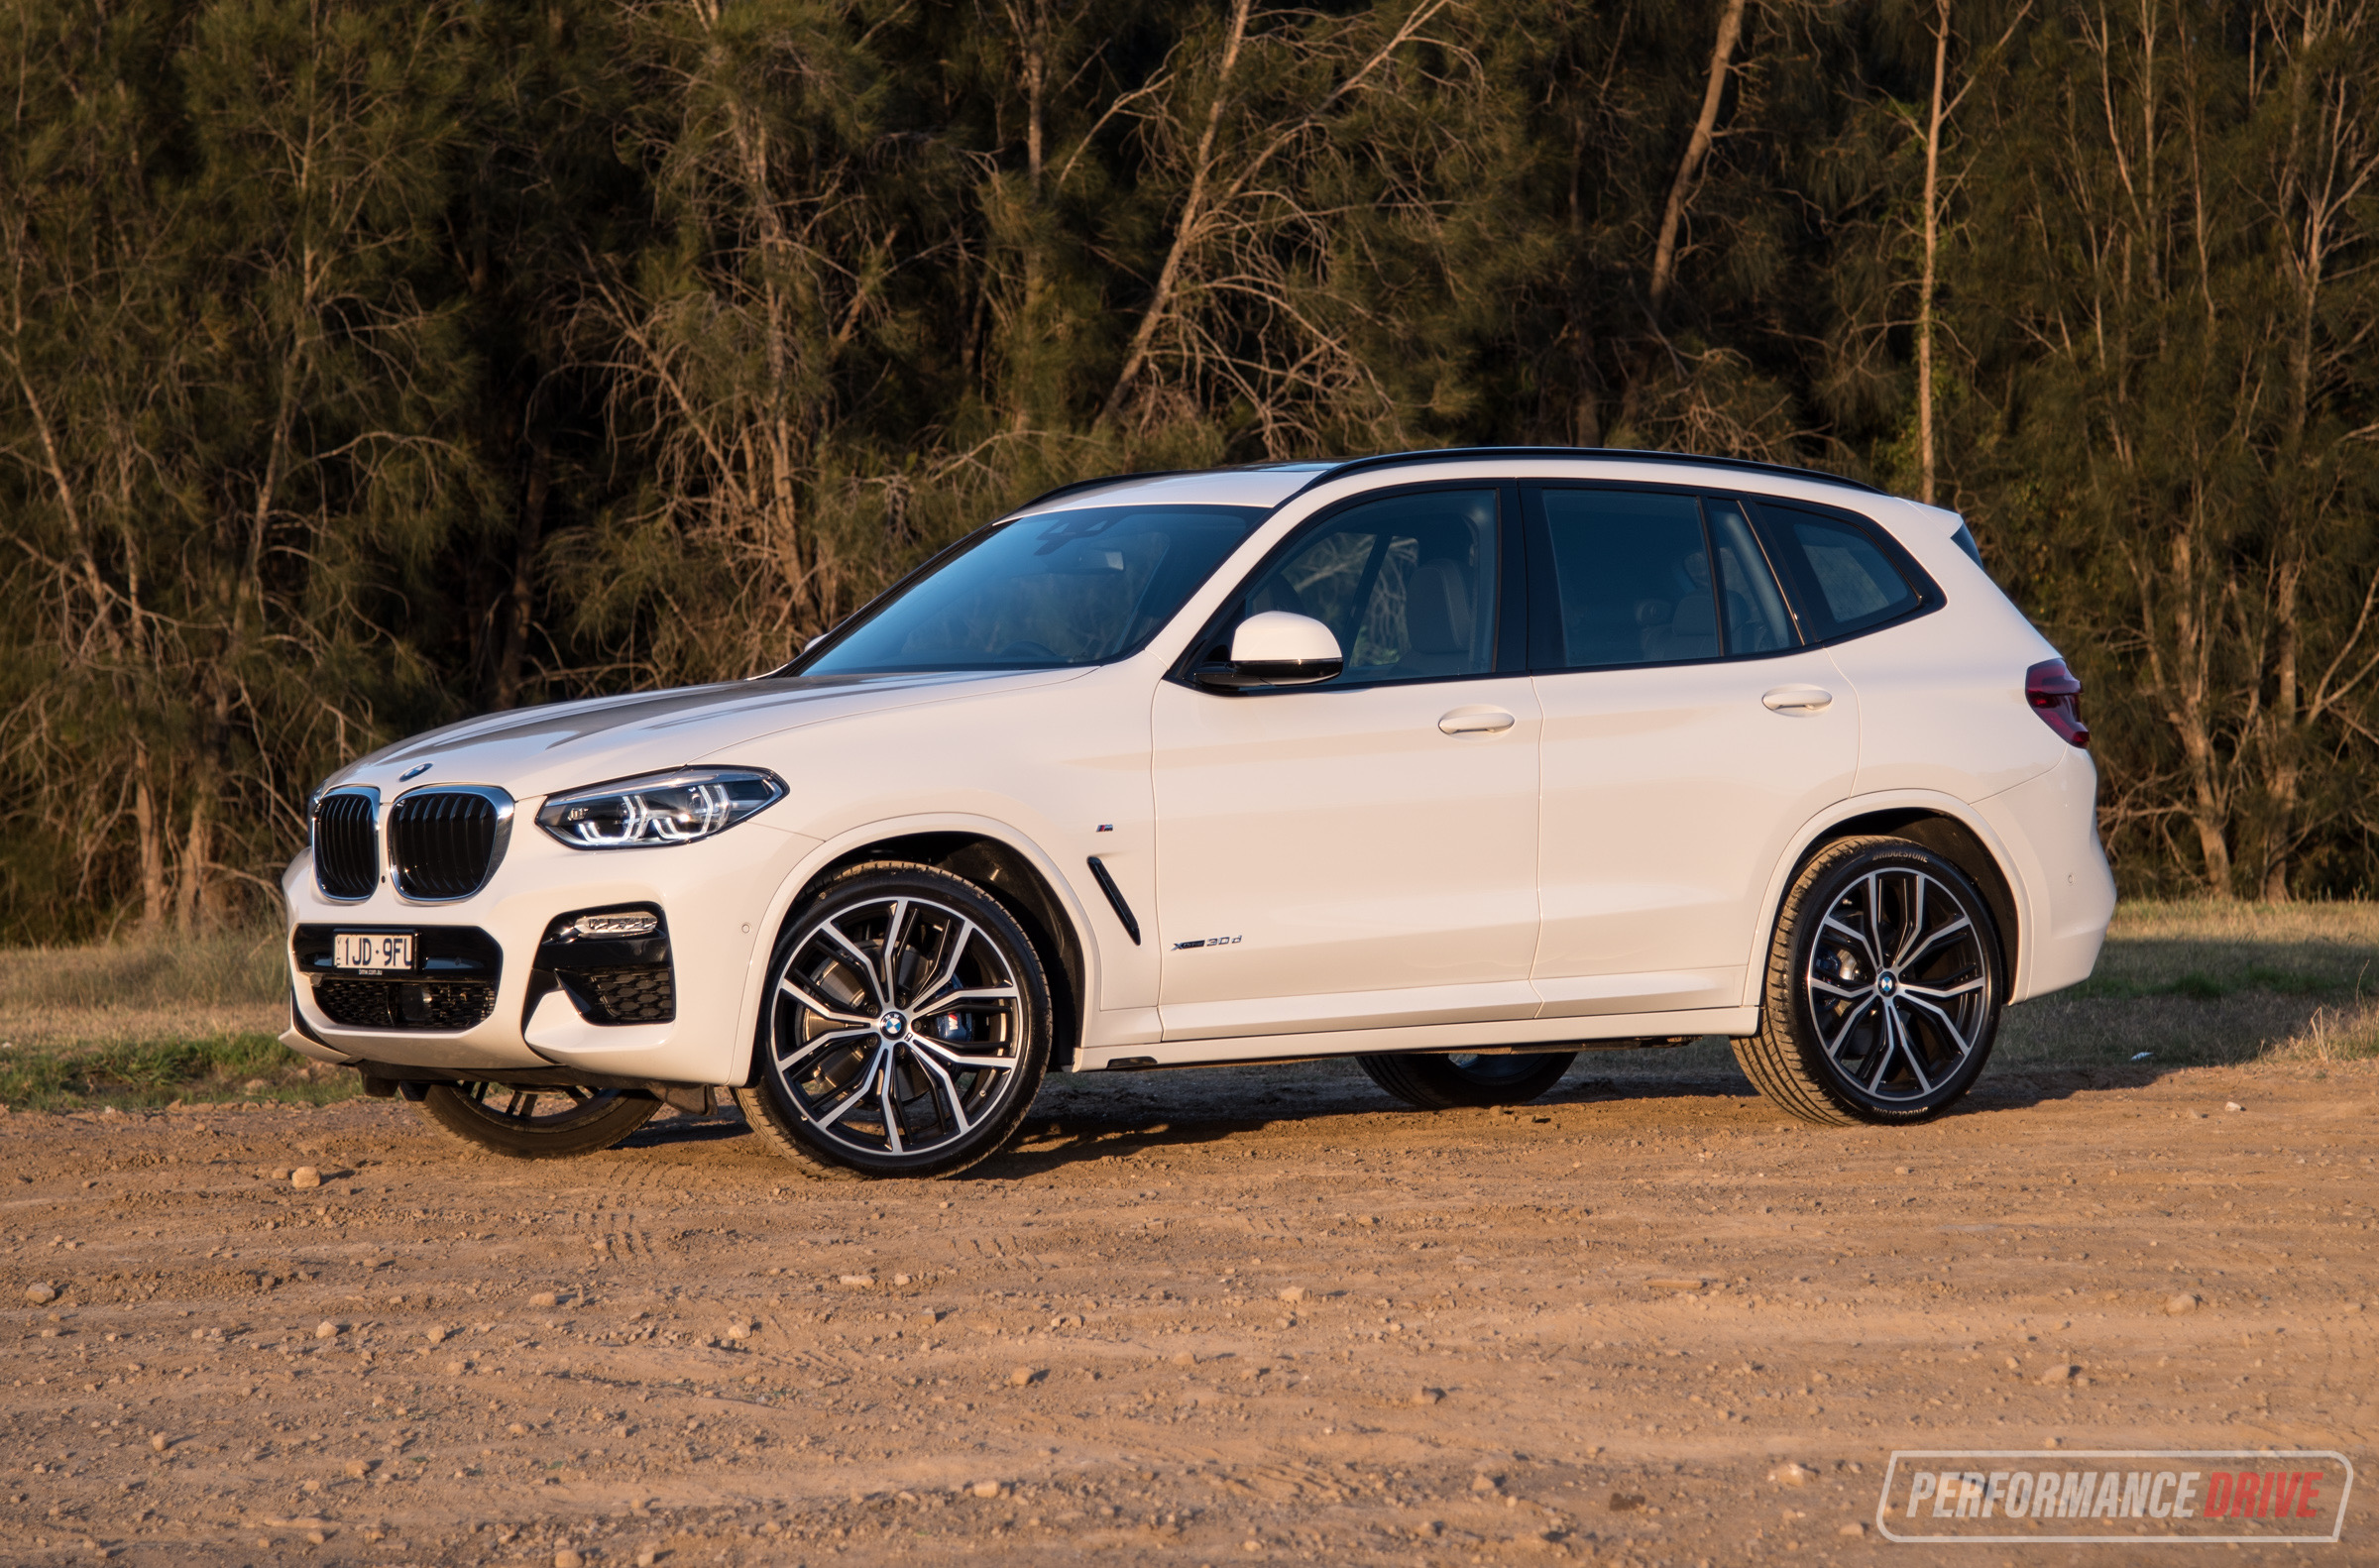 2018 bmw x3 xdrive30d review video performancedrive. Black Bedroom Furniture Sets. Home Design Ideas